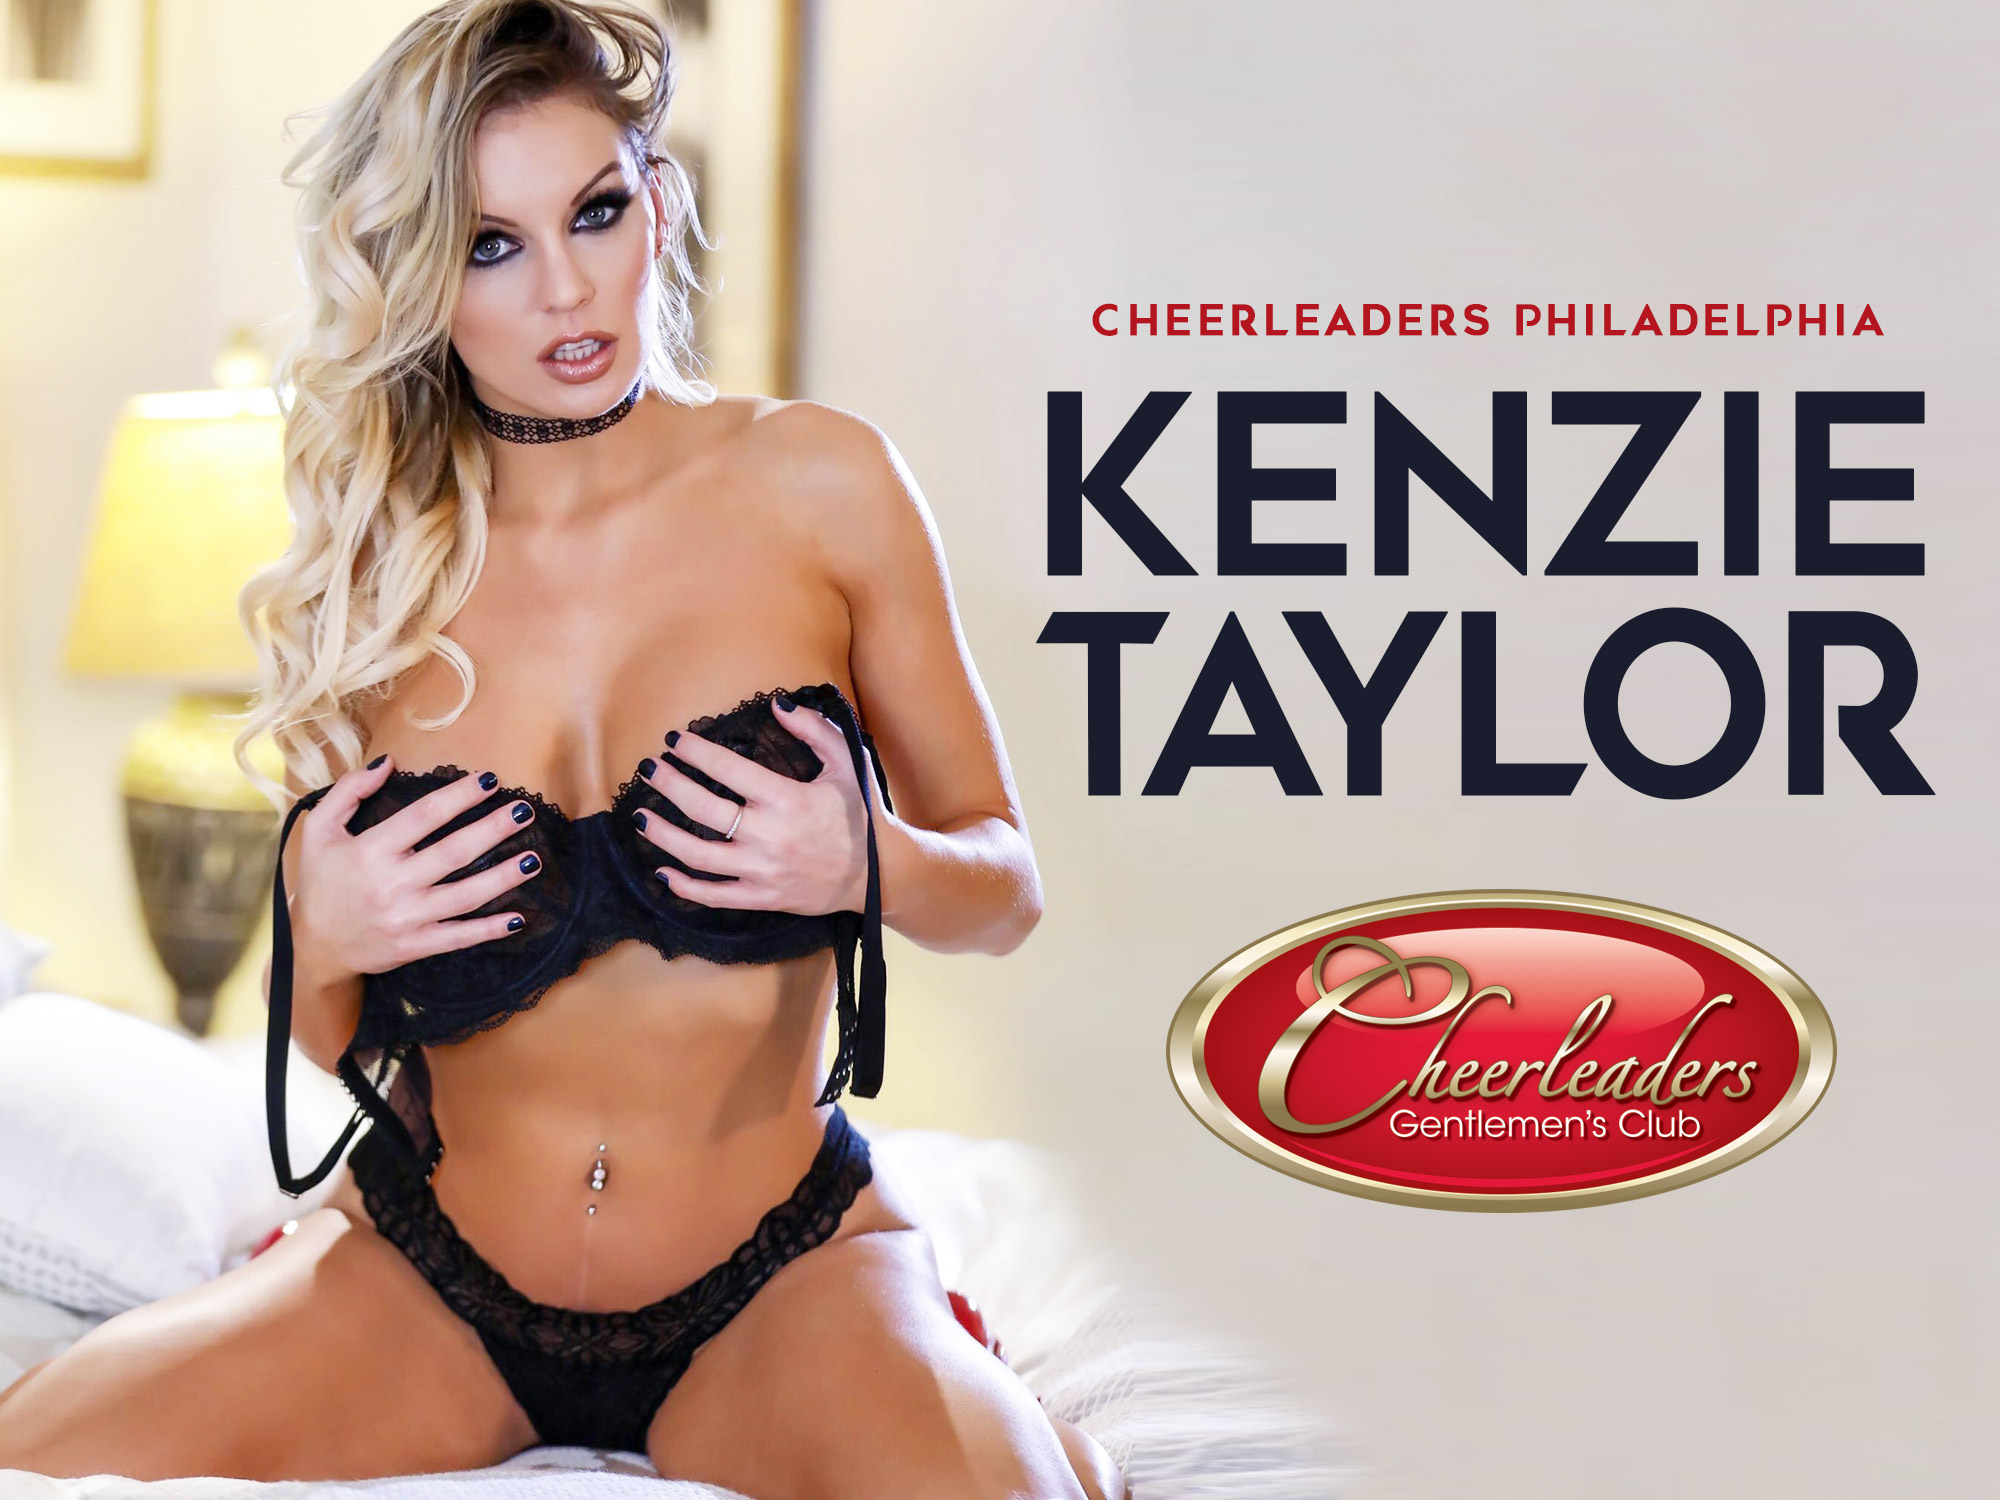 Kenzie Taylor Cheerleaders Philadelphia